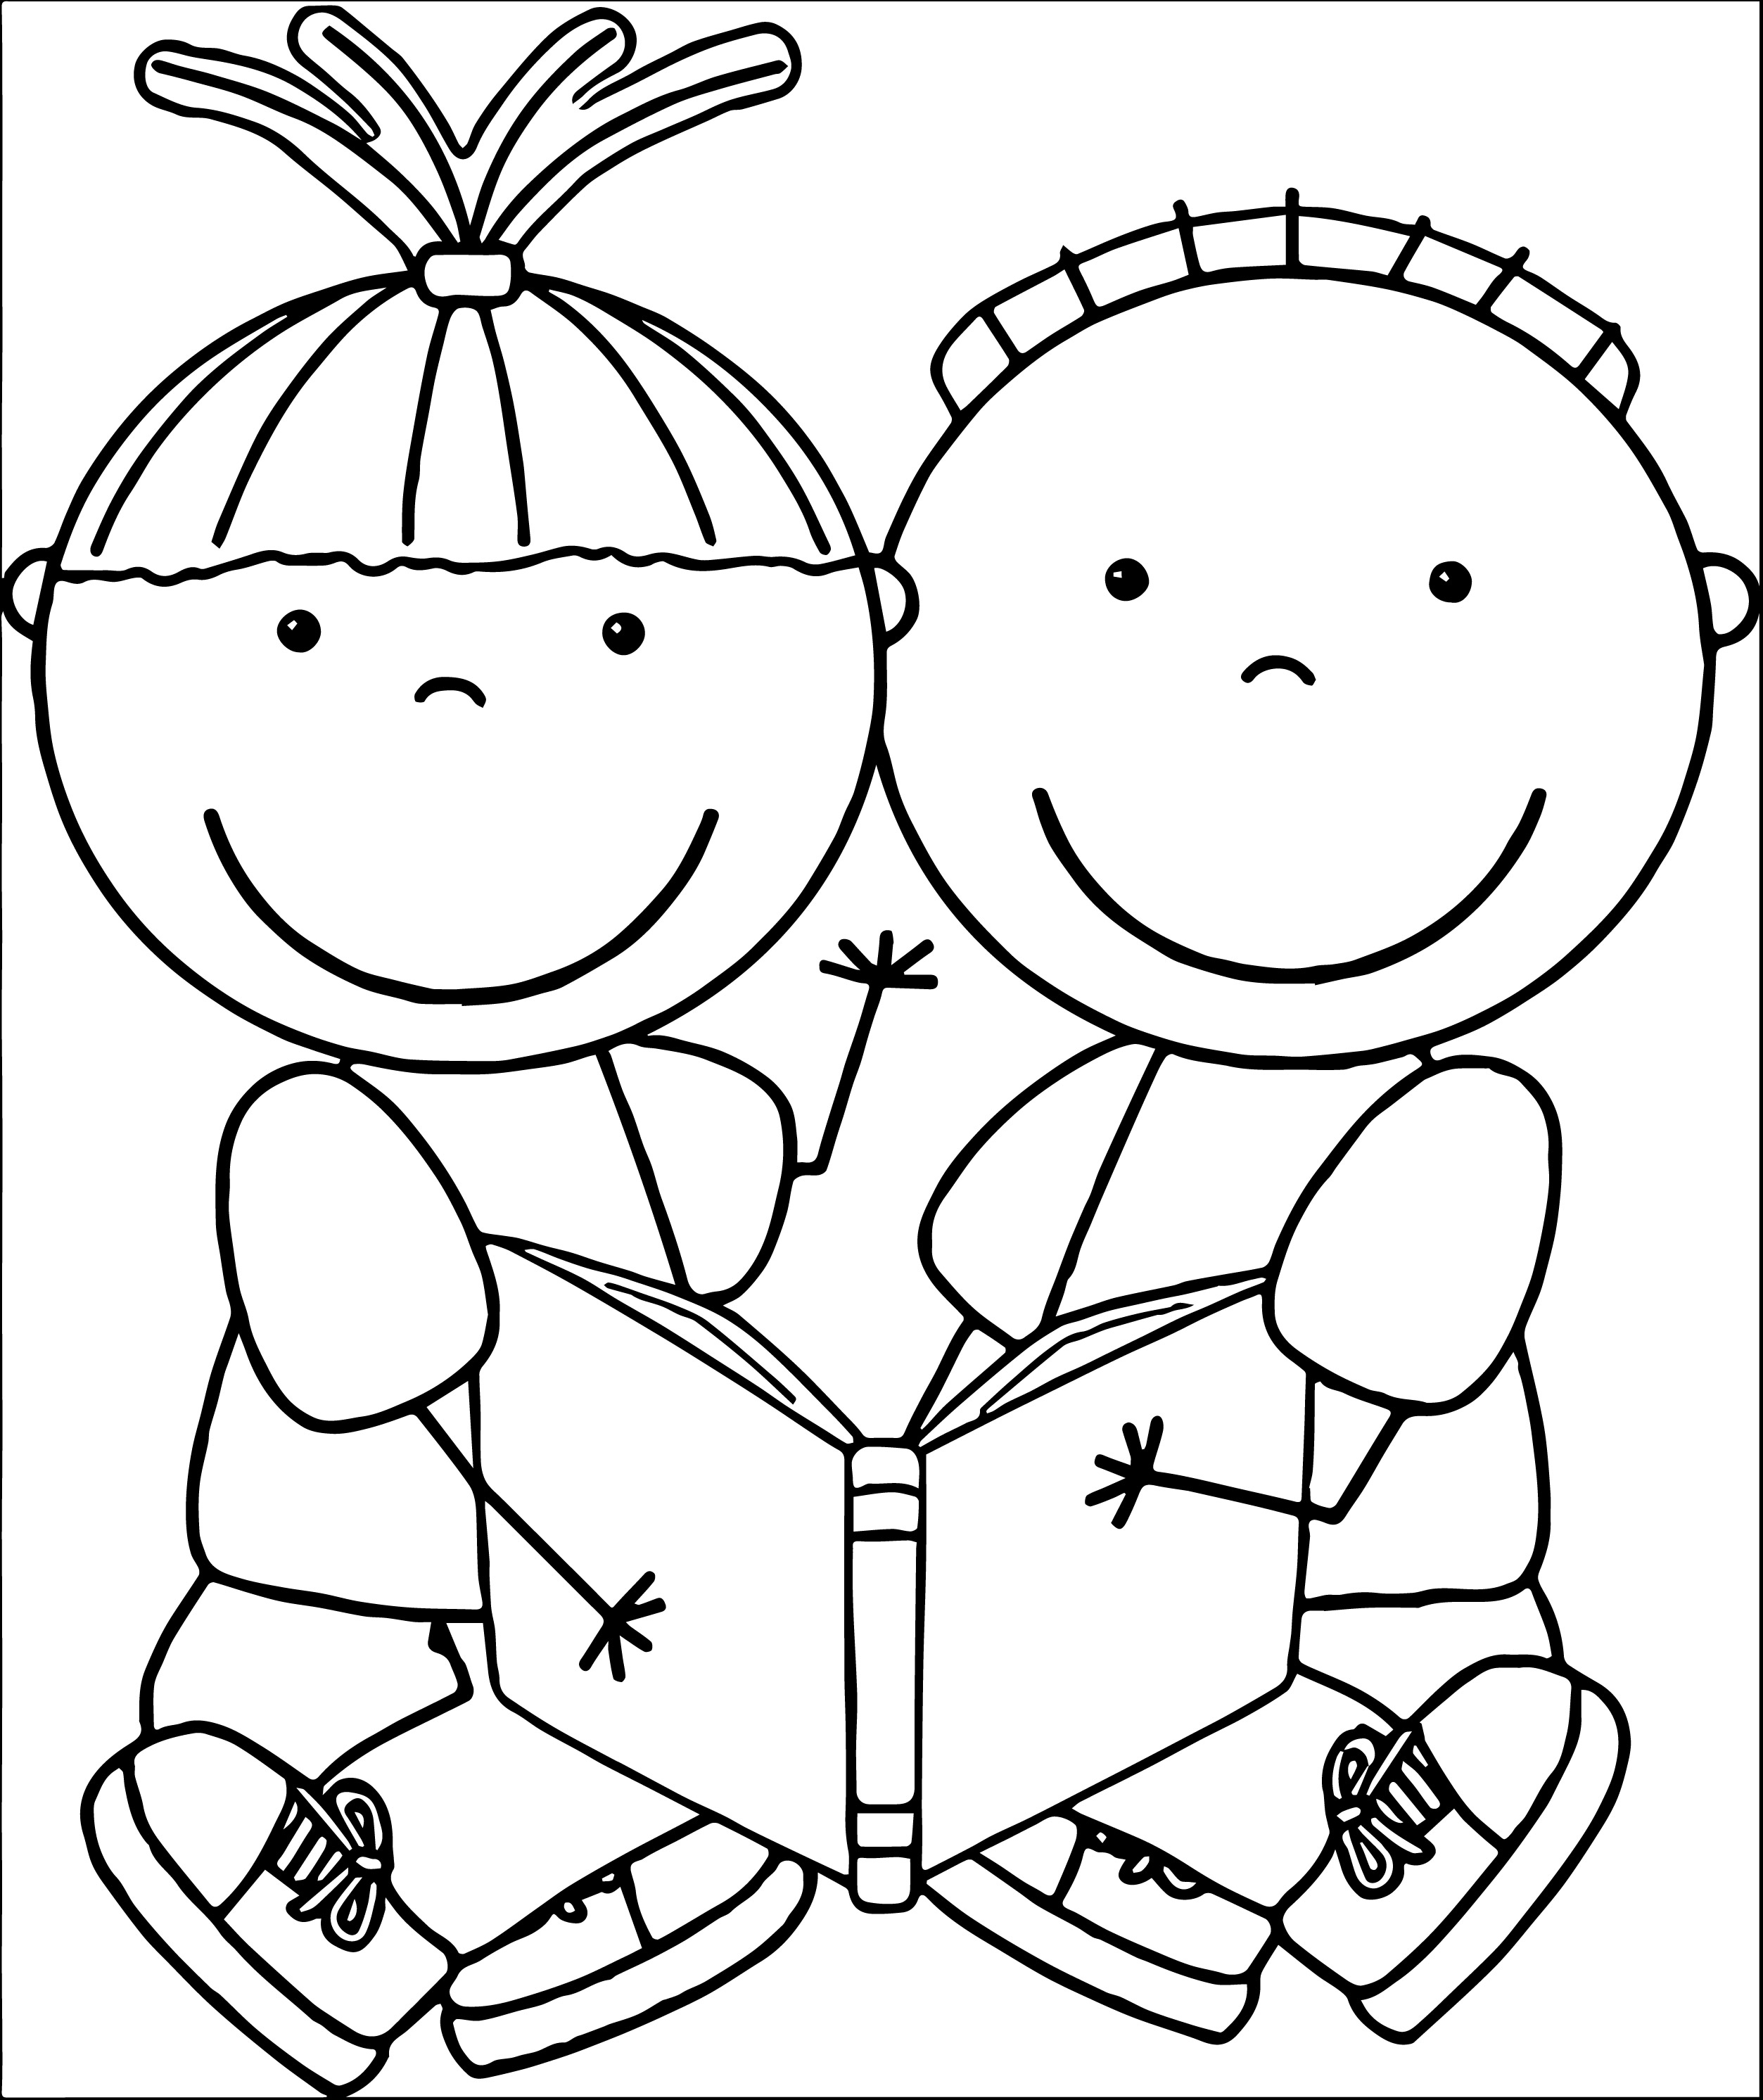 Reading clipart black and white New Child reading children reading.